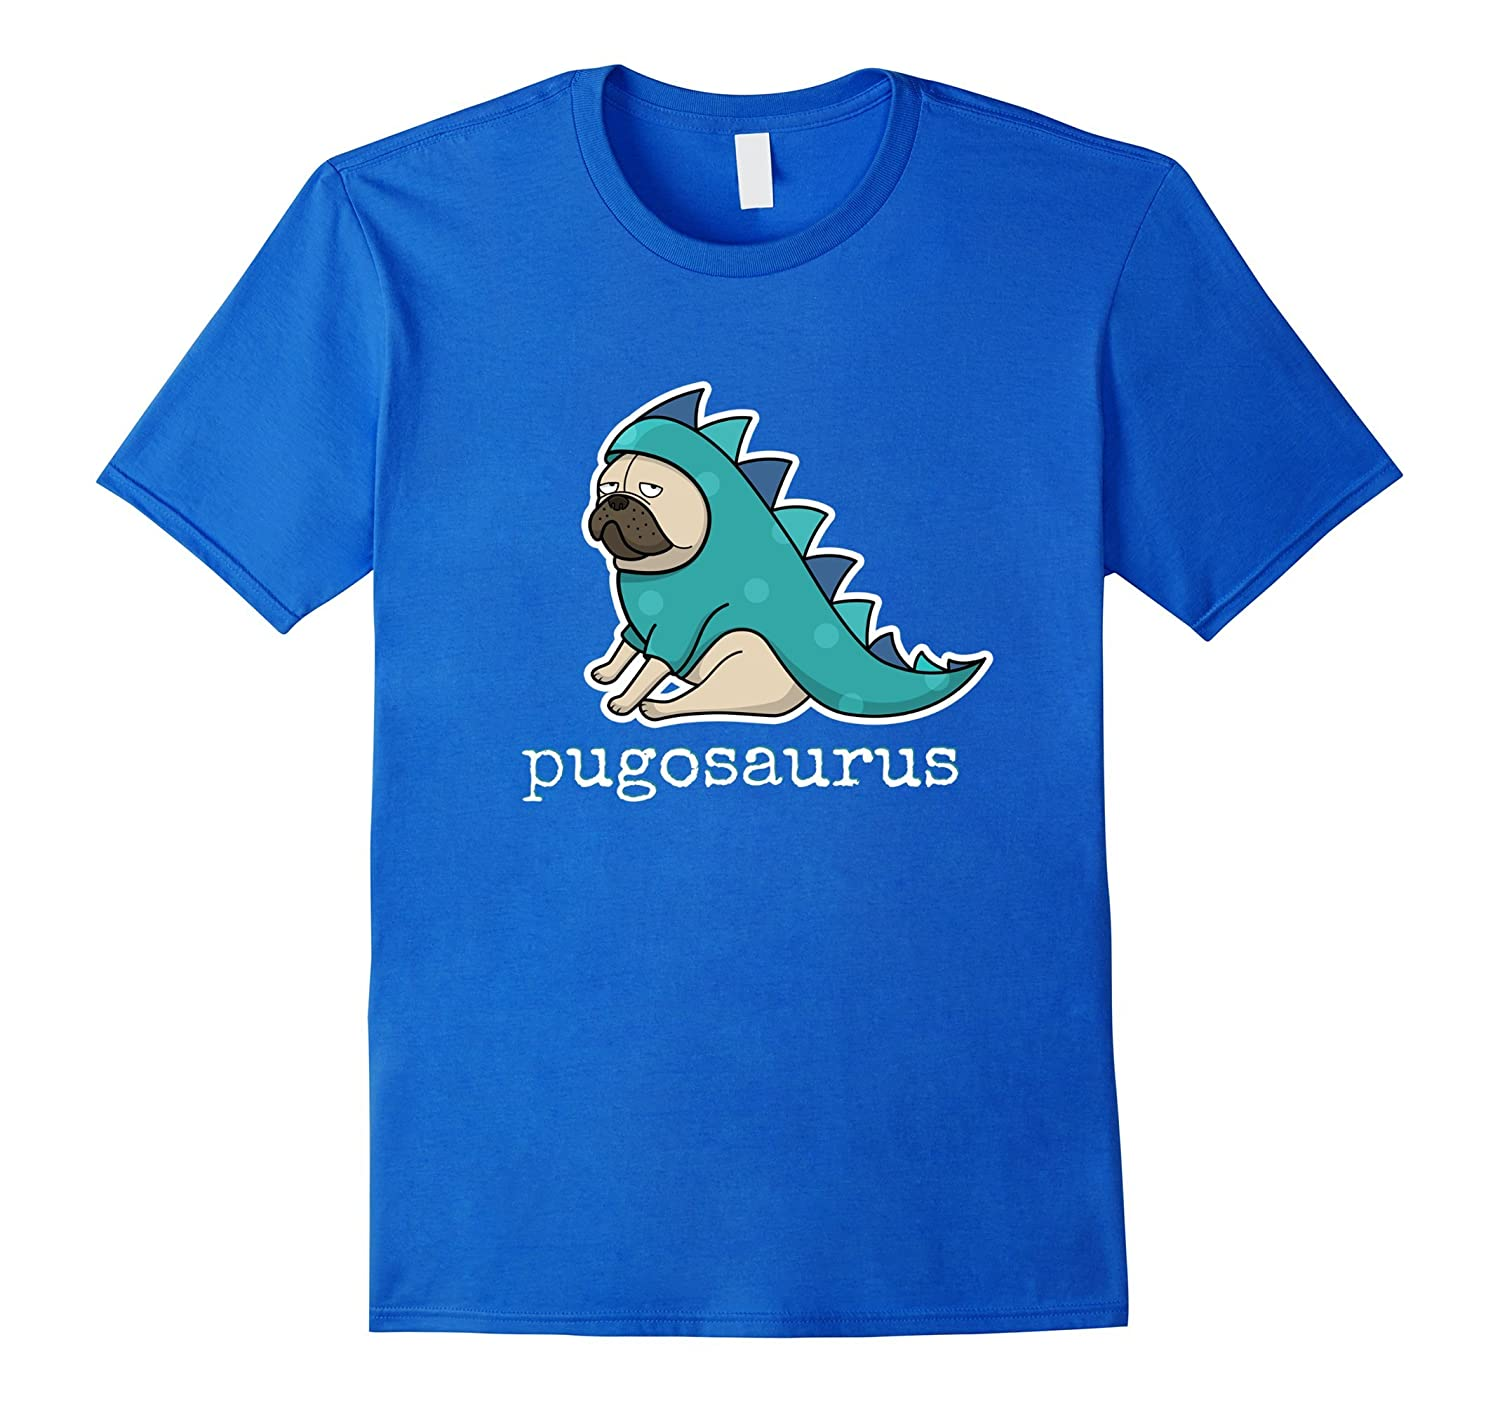 Pugosaurus t-Shirt Cute Pug in Dinosaur Costume  Pugosaur-TH